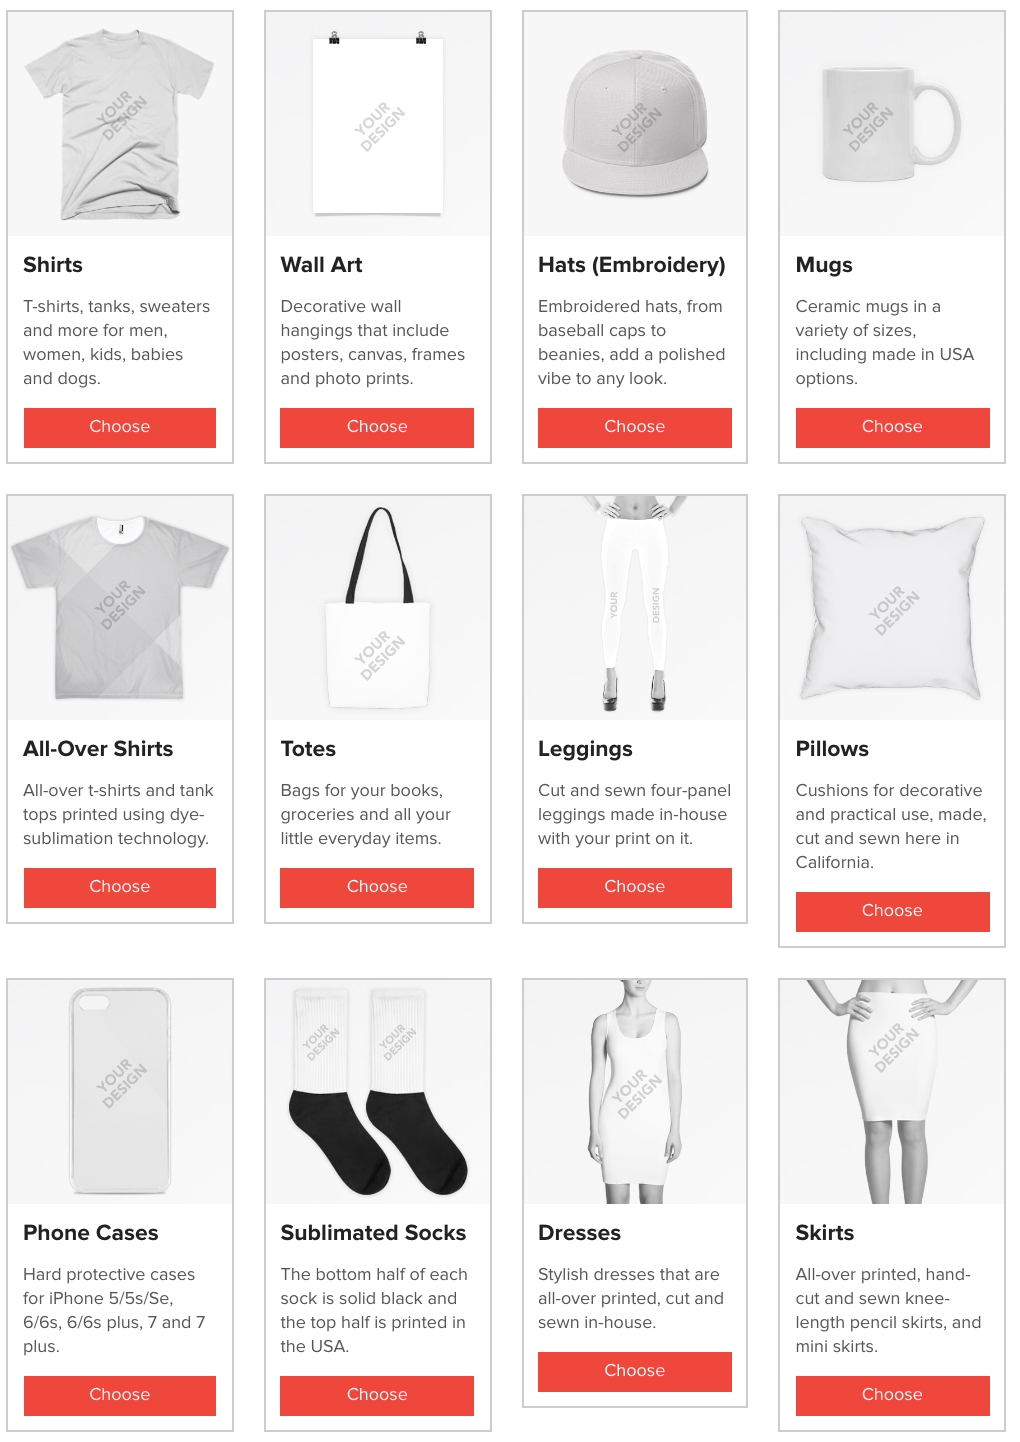 Products available for merchandise